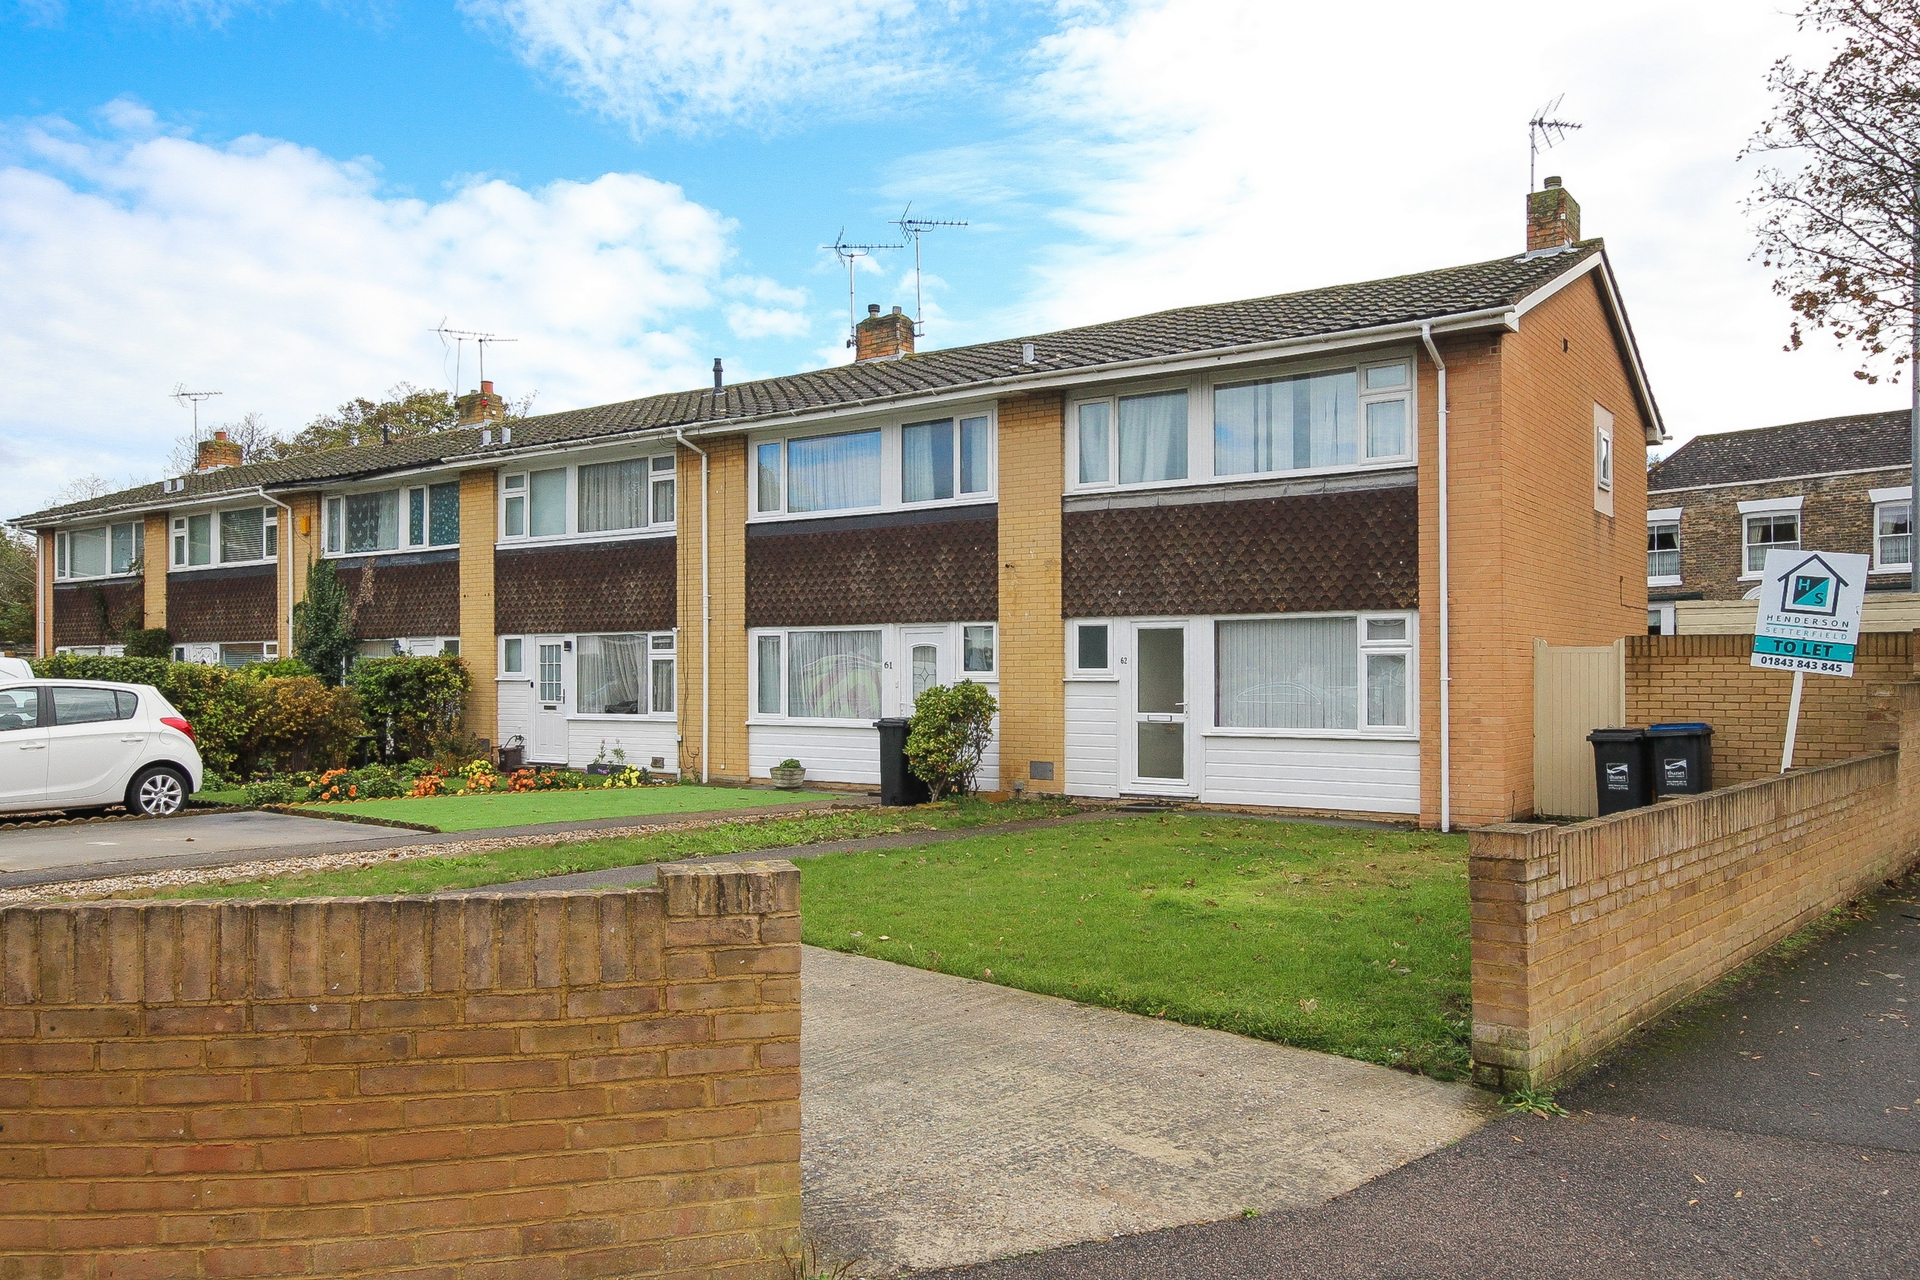 3 bed house to rent in Yew Tree Gardens, Birchington, CT7 1